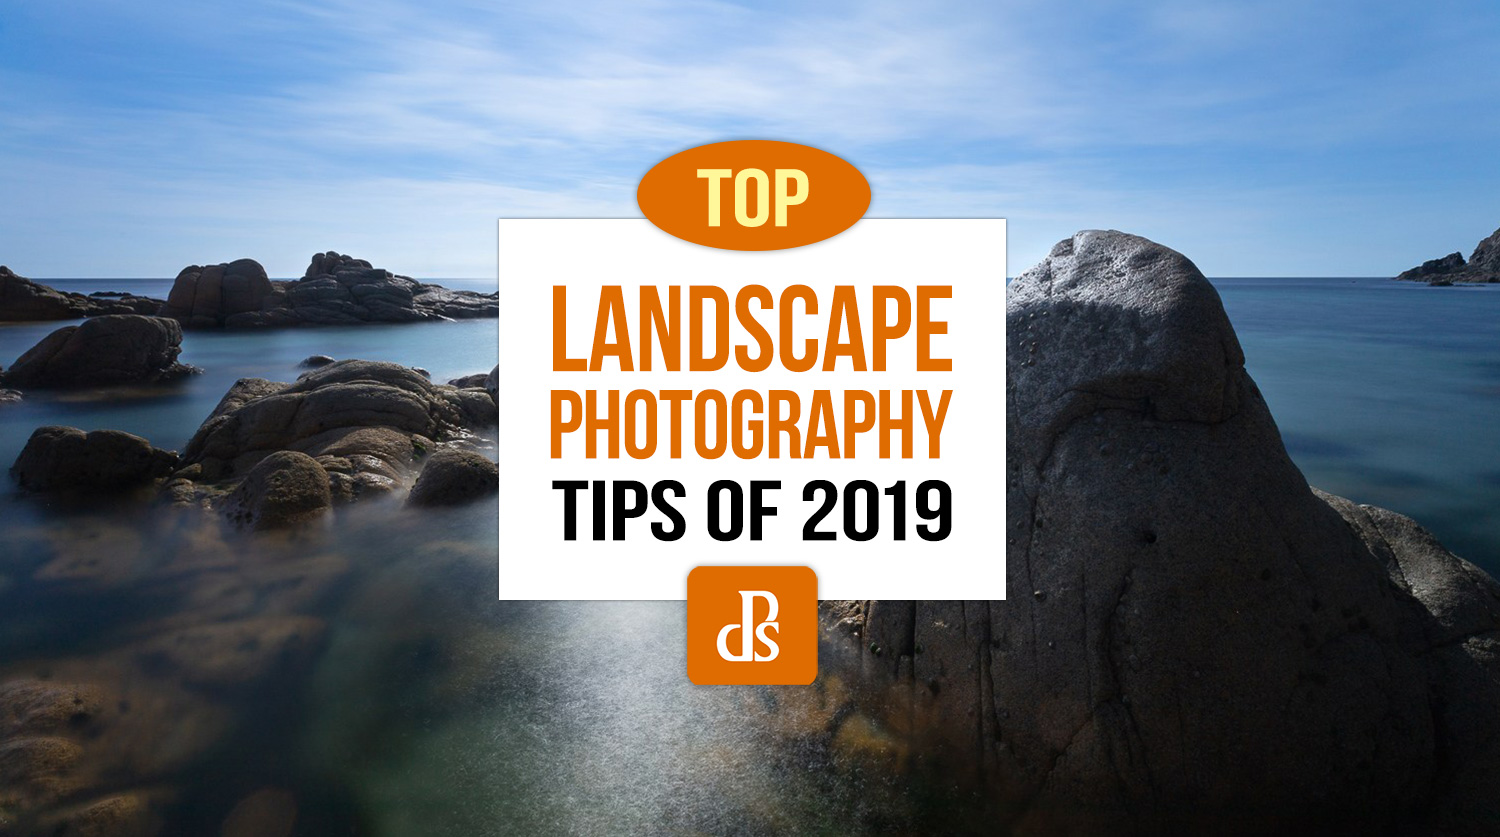 dps-Top-Landscape-Photography-Tips-of-2019